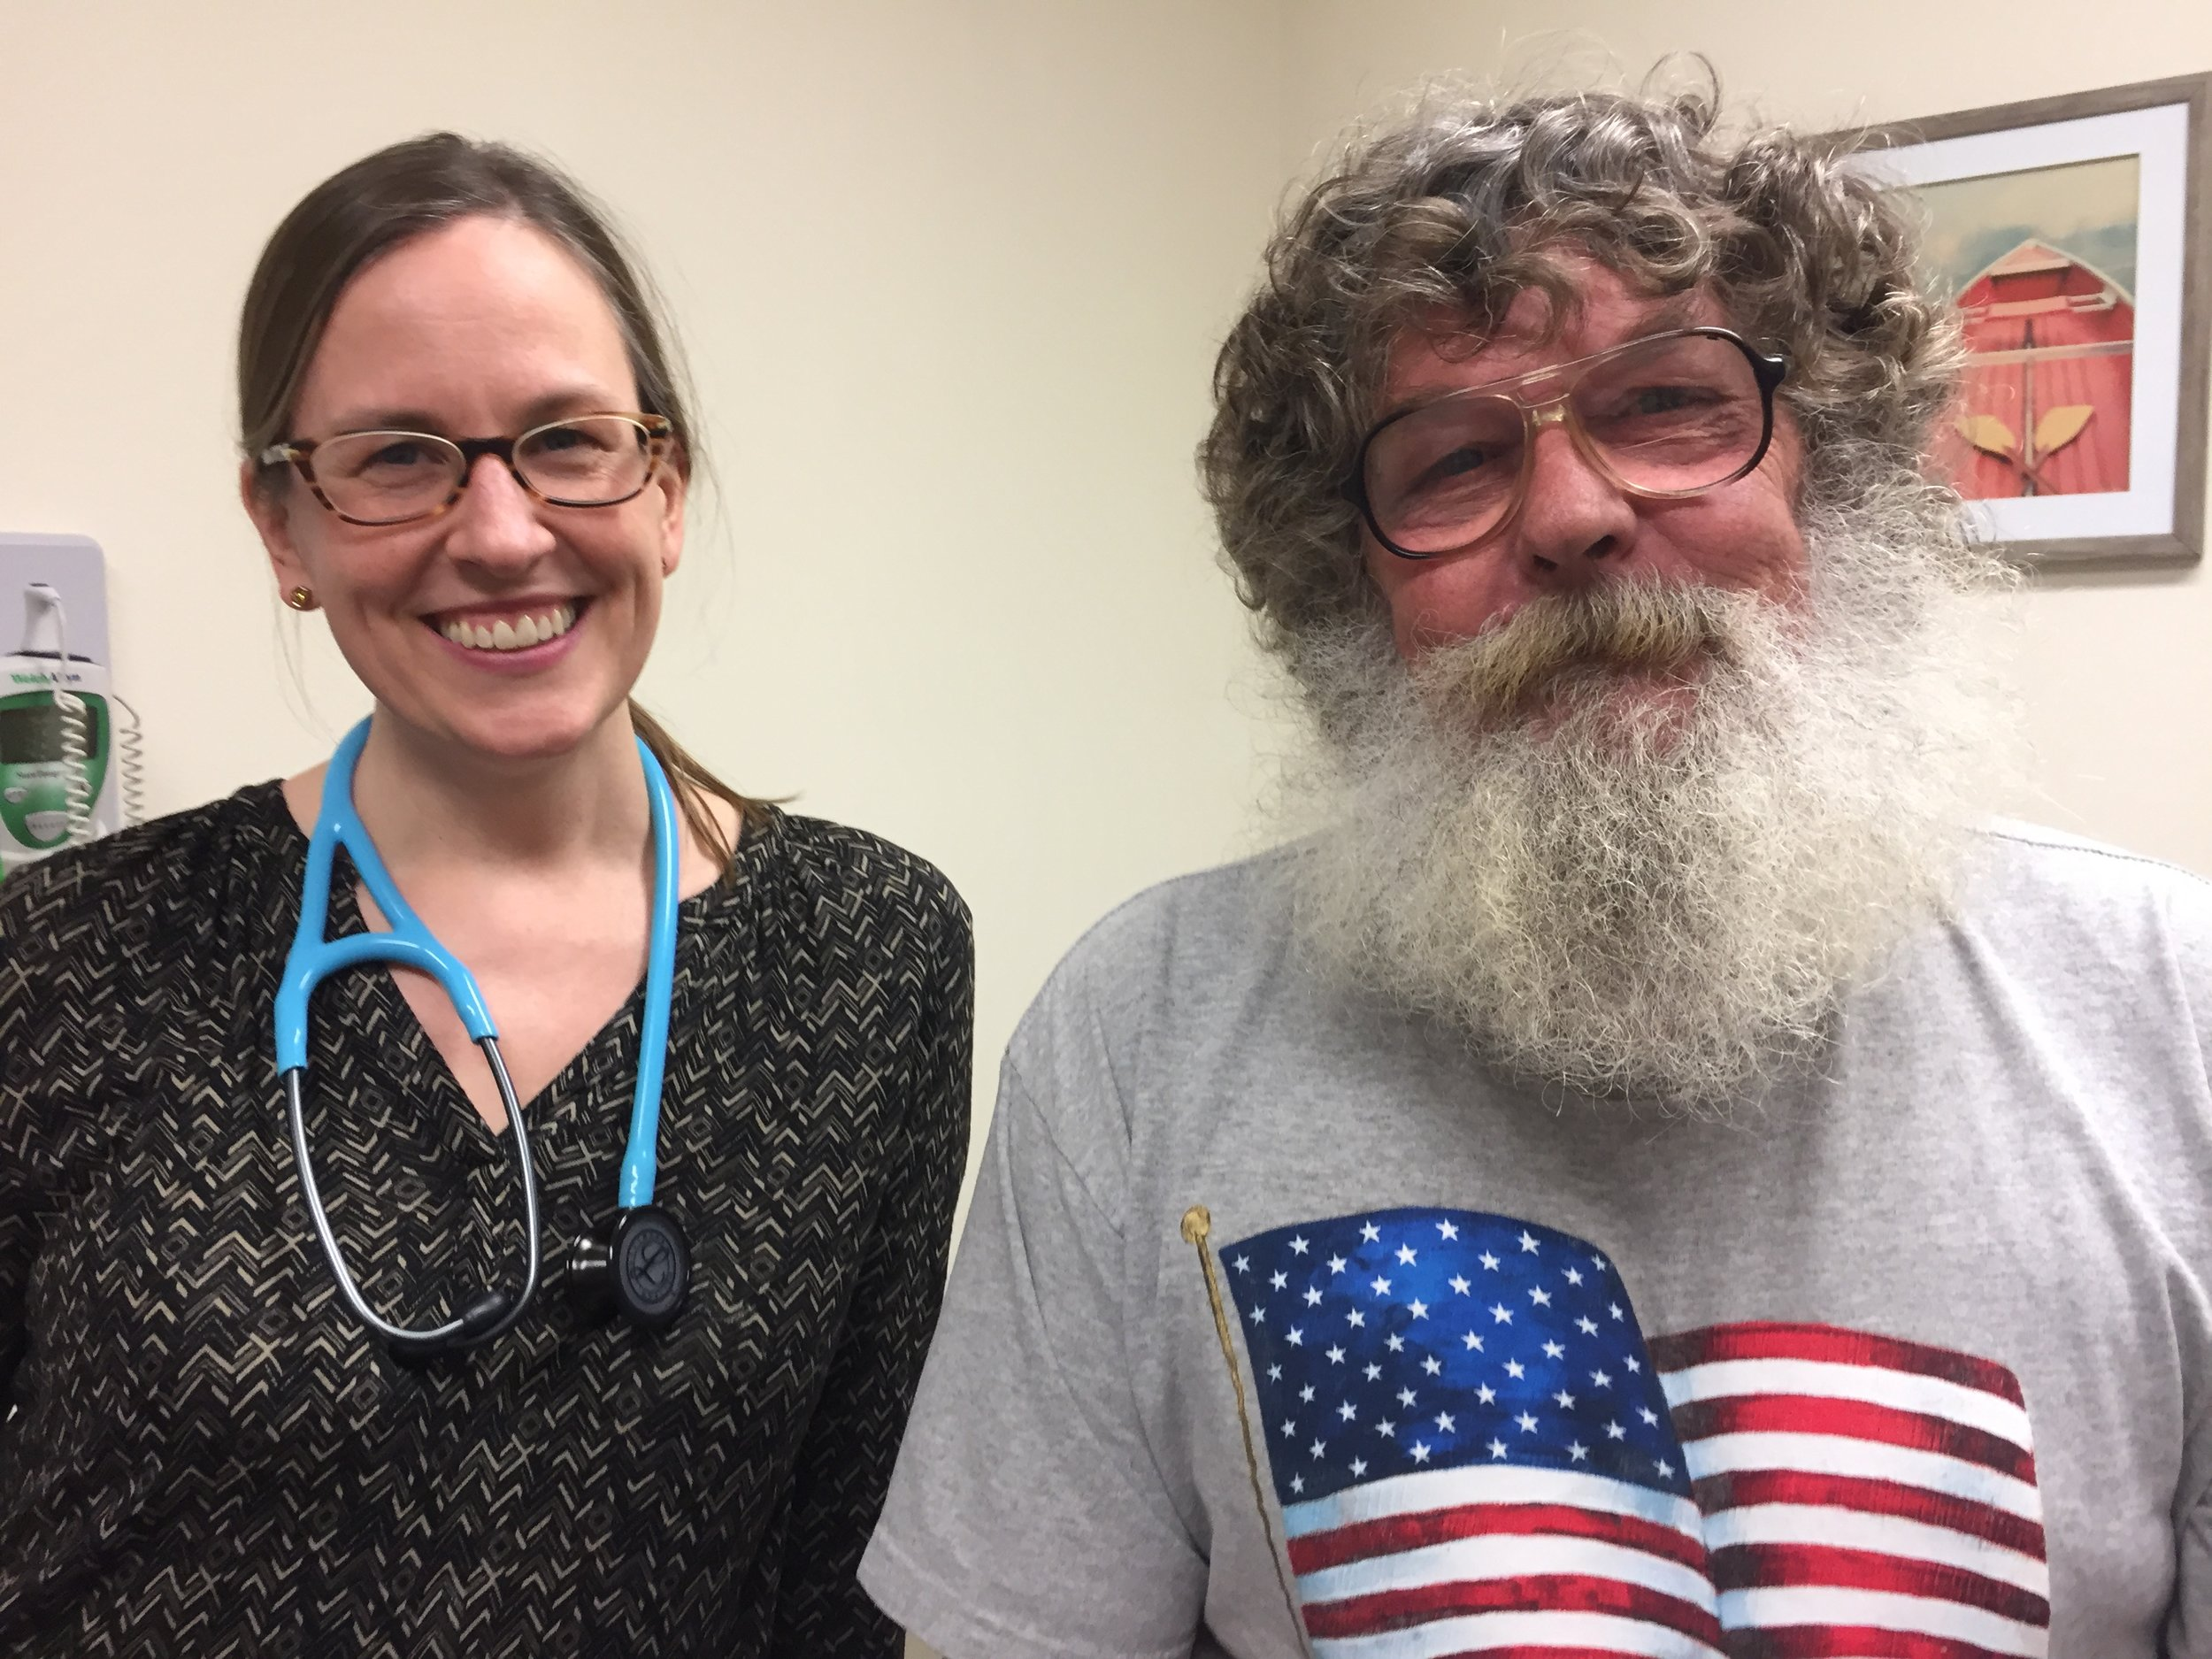 Shown here: One Community Health's Sondi Koch, PA-C and her patient, Doug Randle.